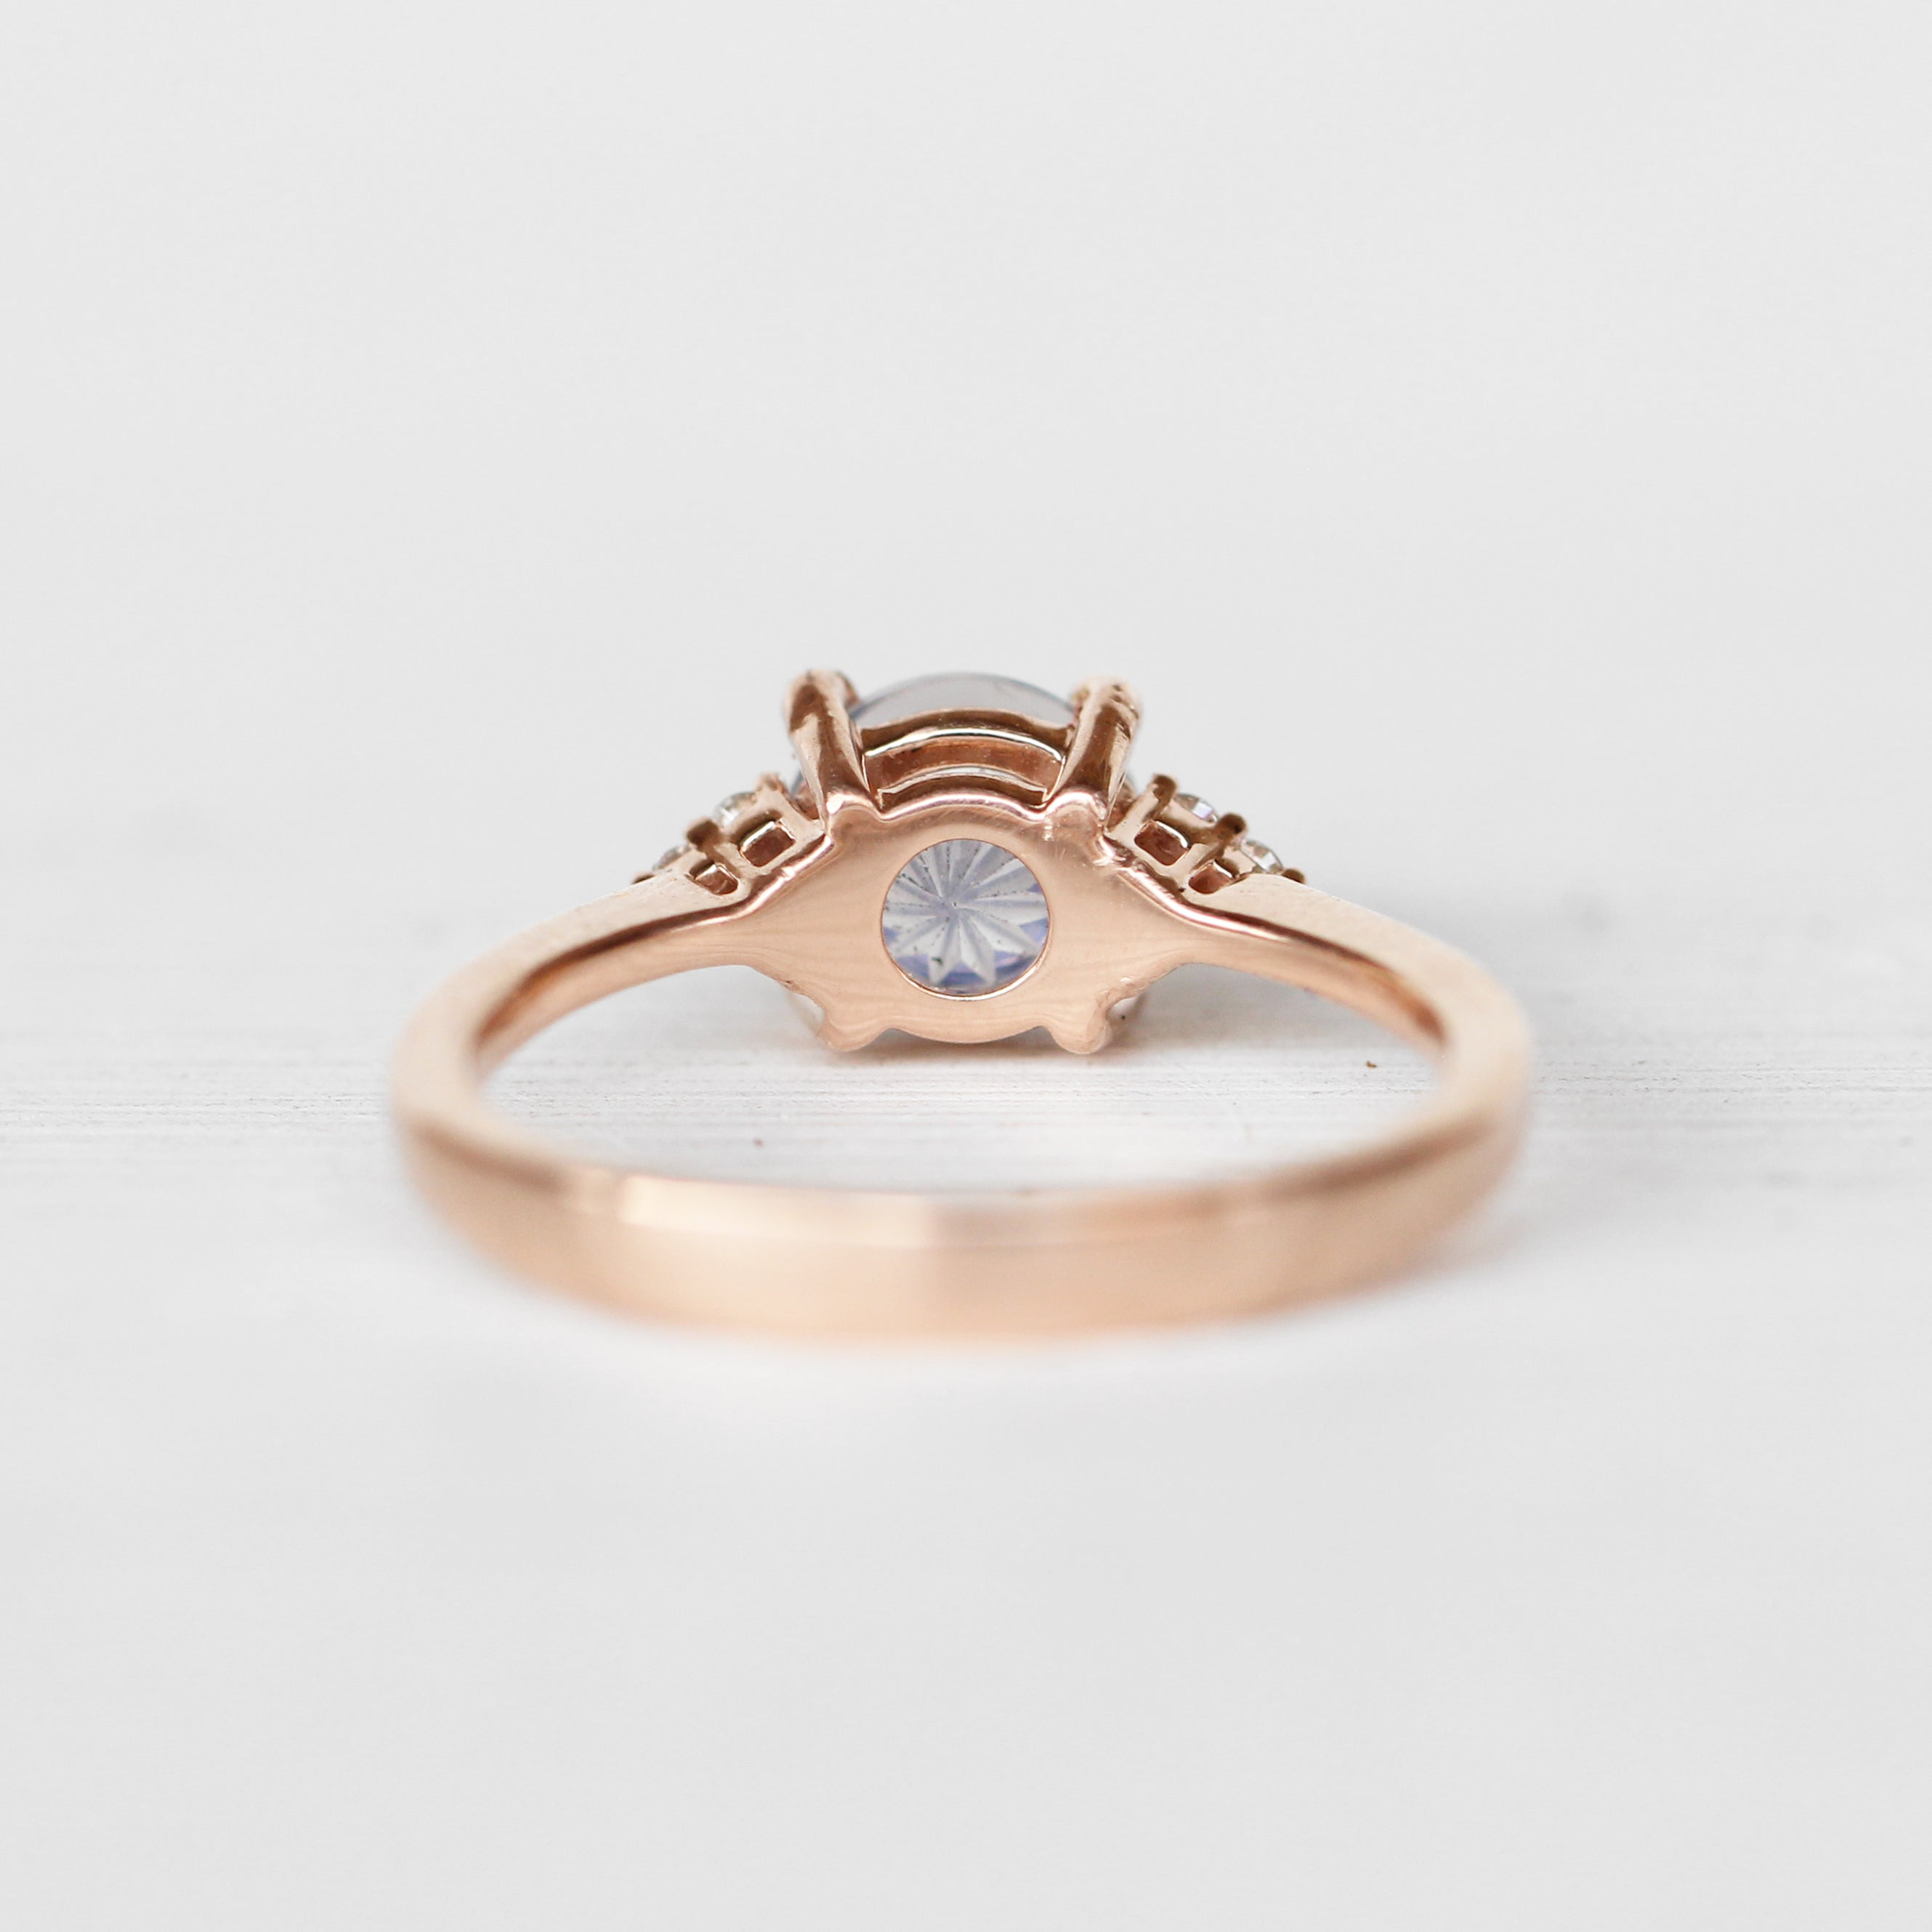 Imogene Ring with a 1.3 ct Fluorite Quartz in 14k Rose Gold - Ready to Size and Ship - Salt & Pepper Celestial Diamond Engagement Rings and Wedding Bands  by Midwinter Co.